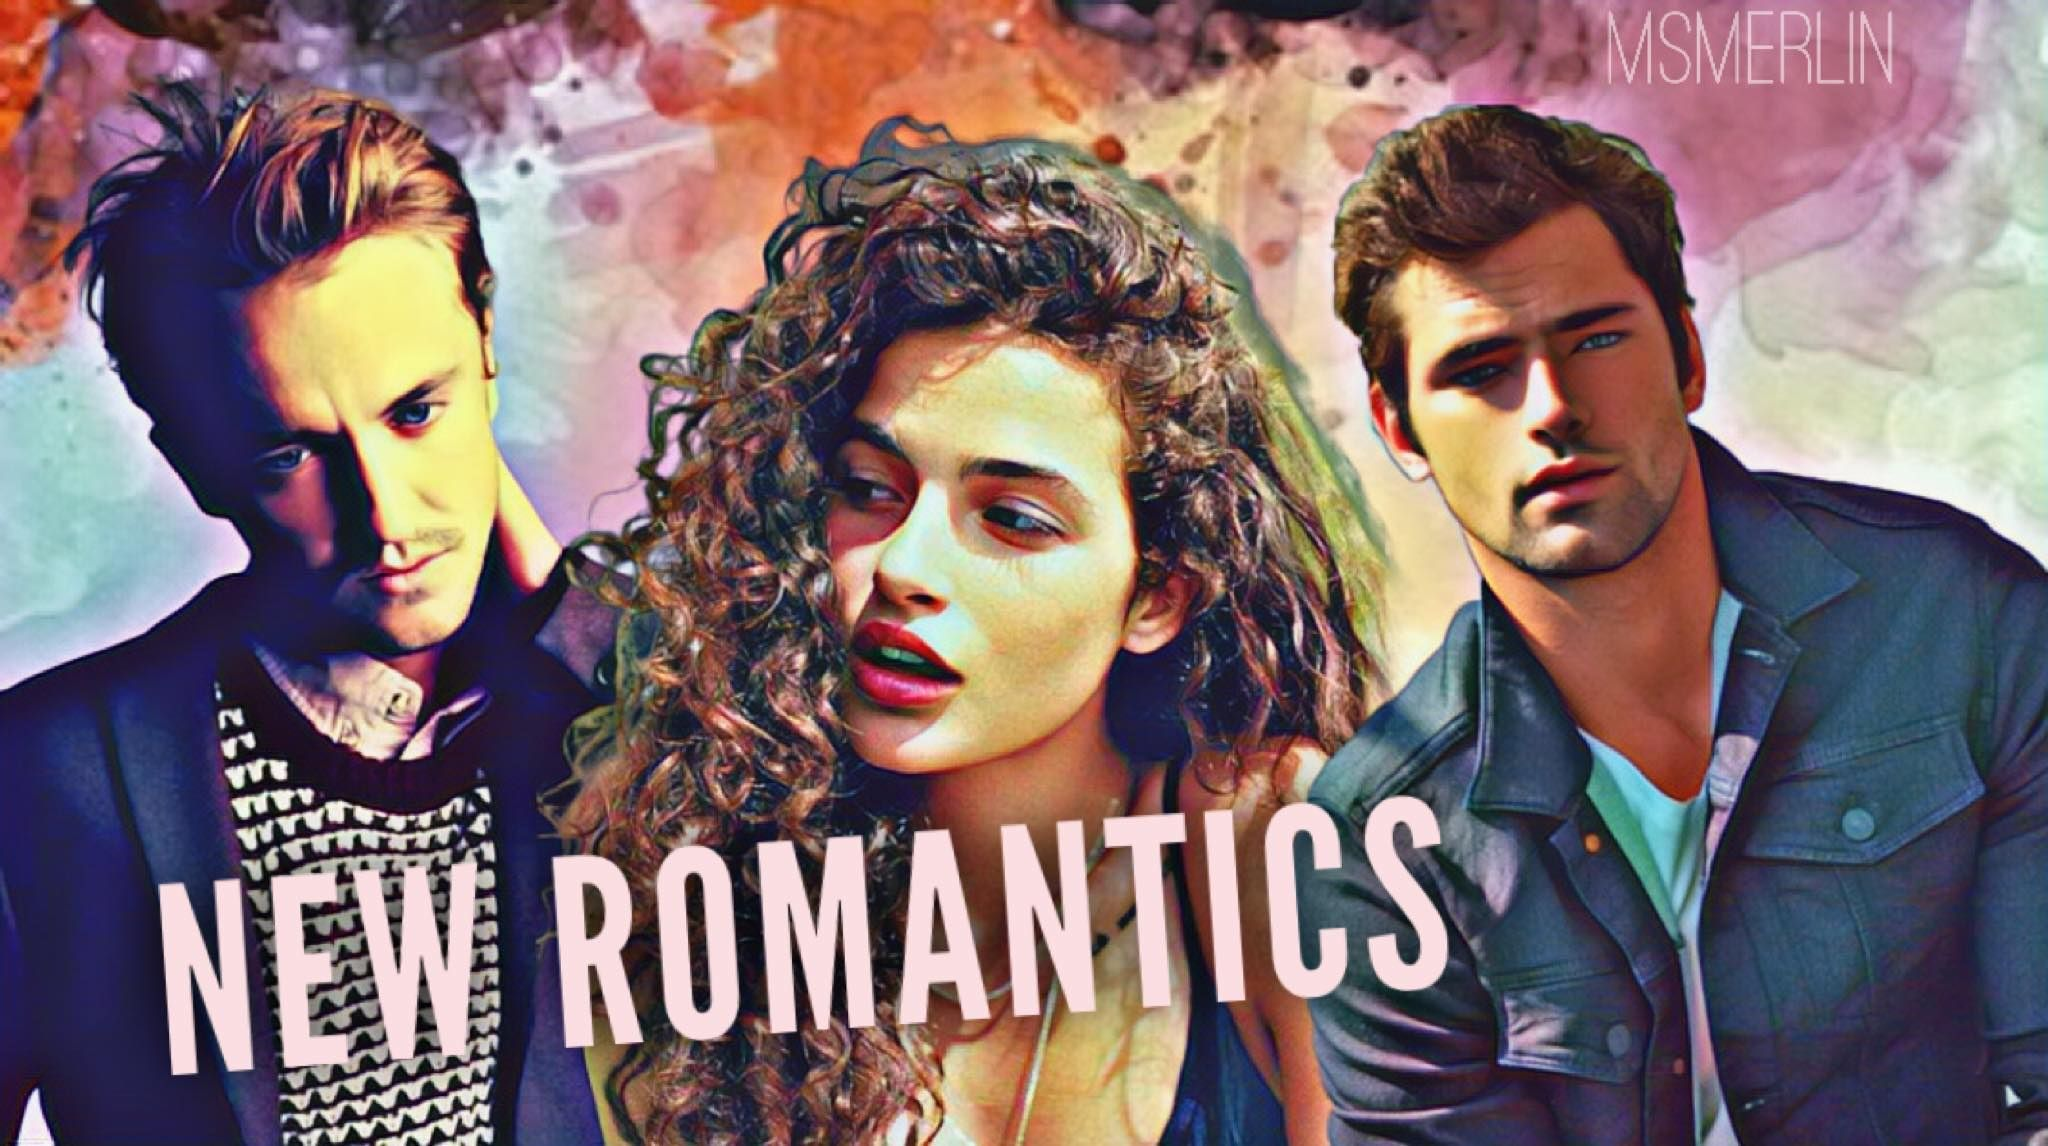 New Romantics Chapter 1 Msmerlin Harry Potter J K Rowling Archive Of Our Own New Romantics Romantic Archive Of Our Own